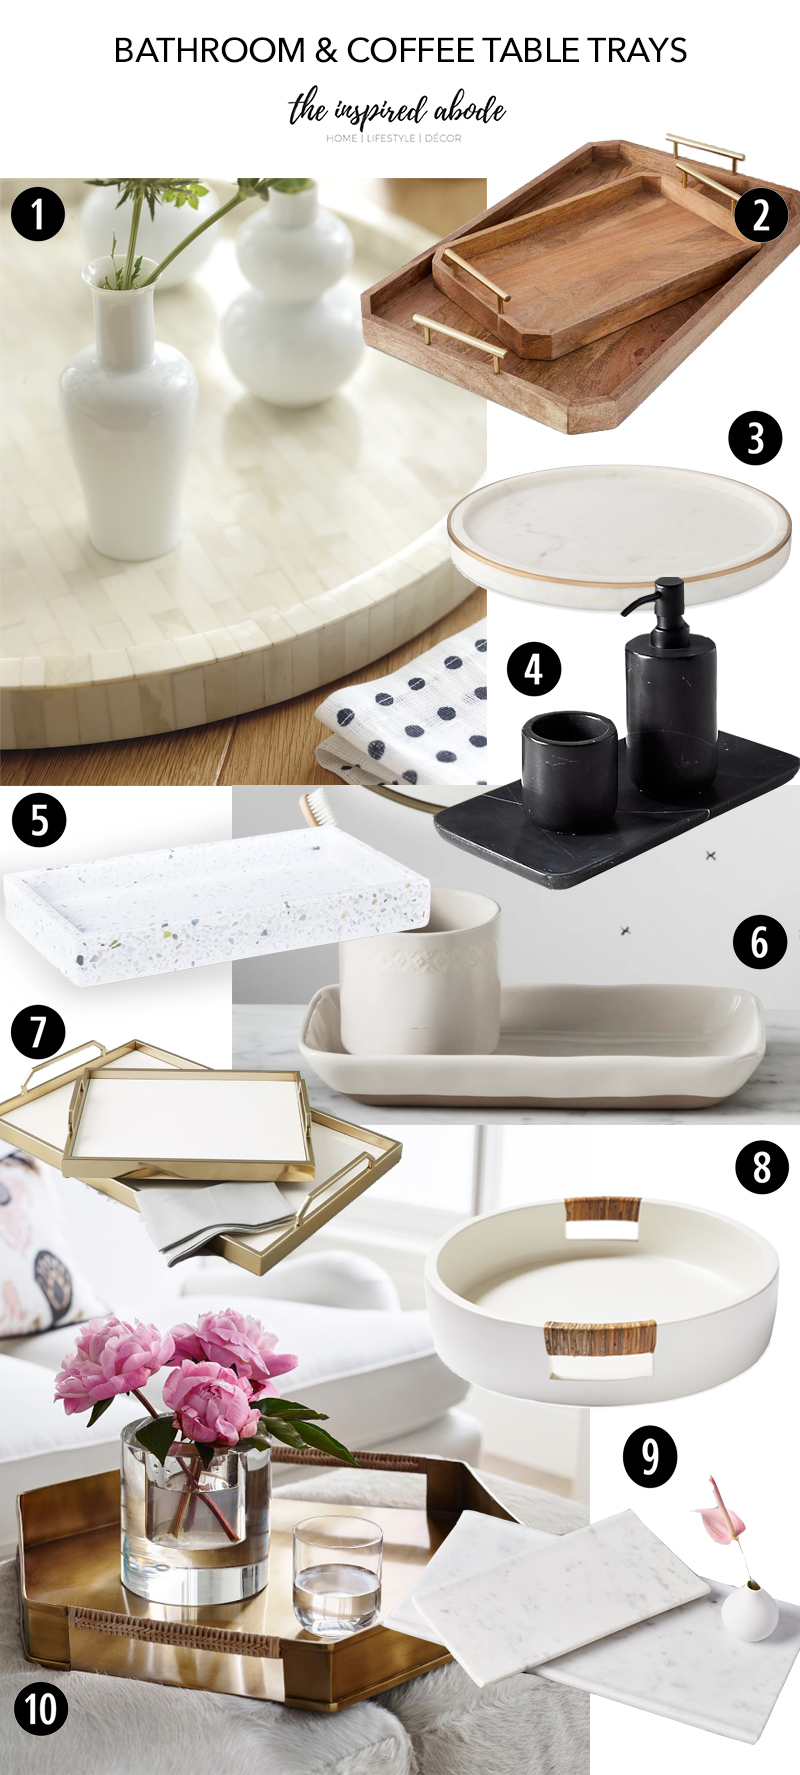 Our favorite bathroom trays and coffee table trays for décor and necessities.